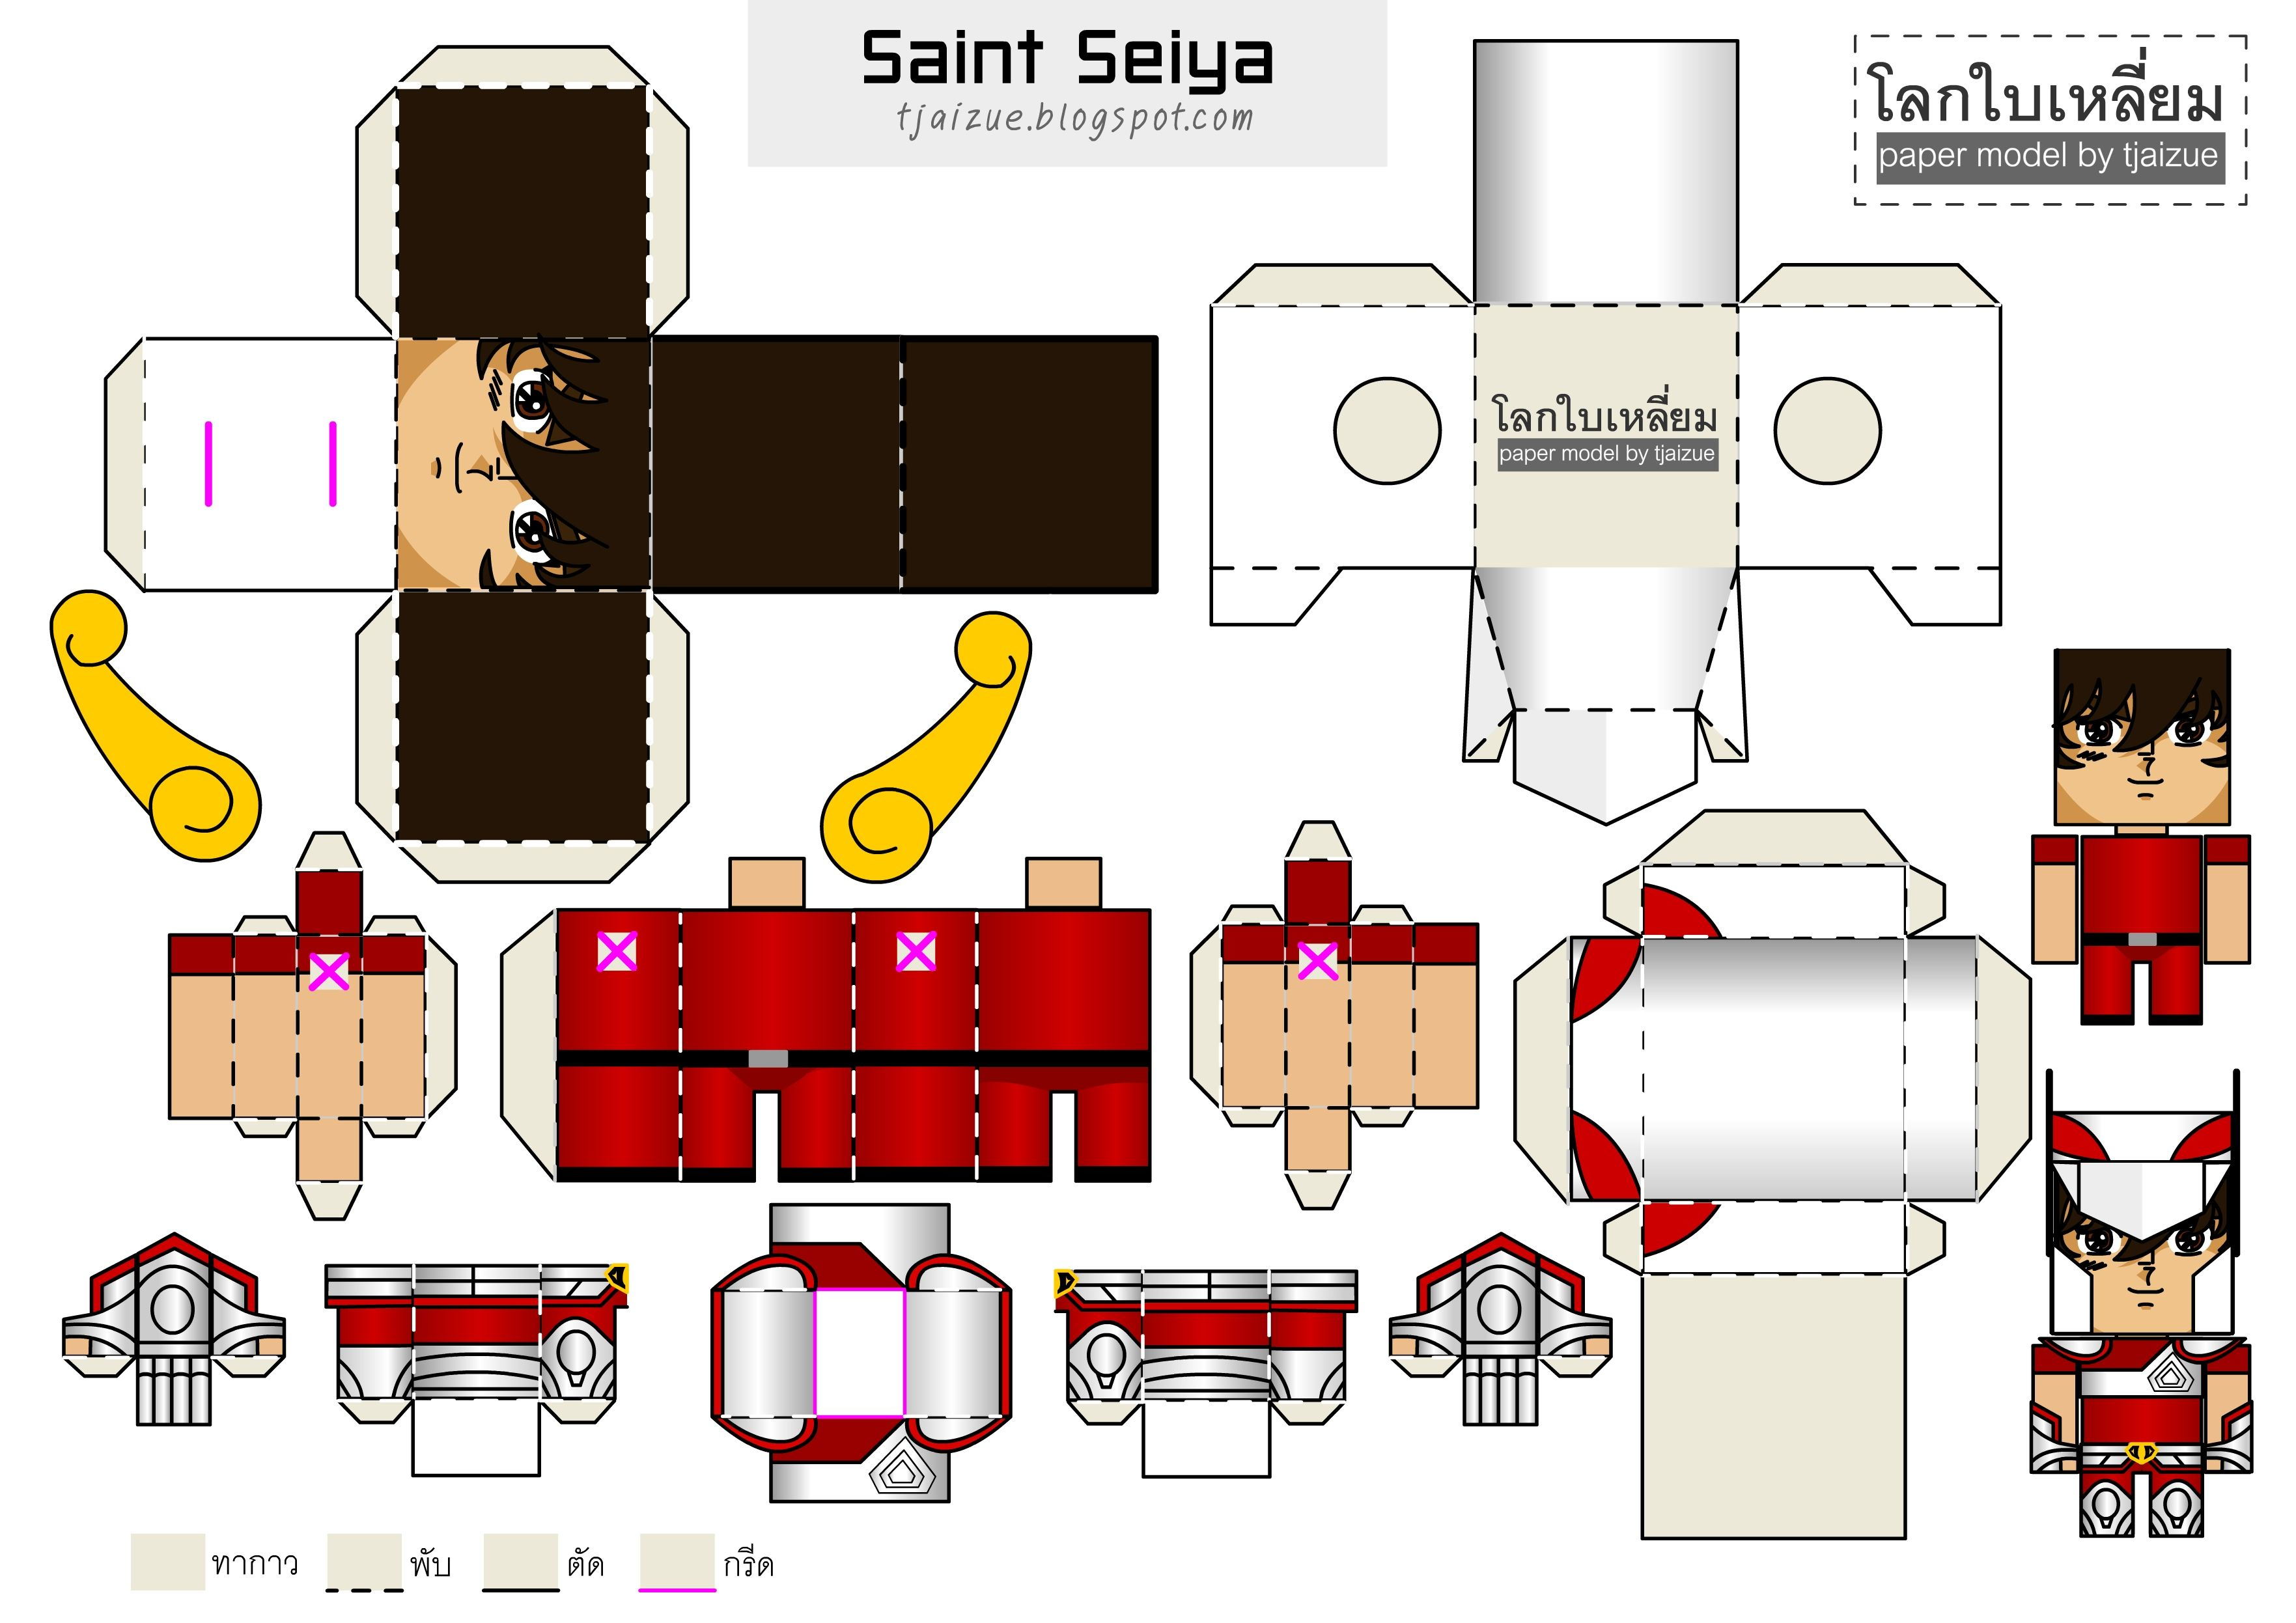 Image Detail For Blog Paper Toy Papertoy Saint Seiya Template